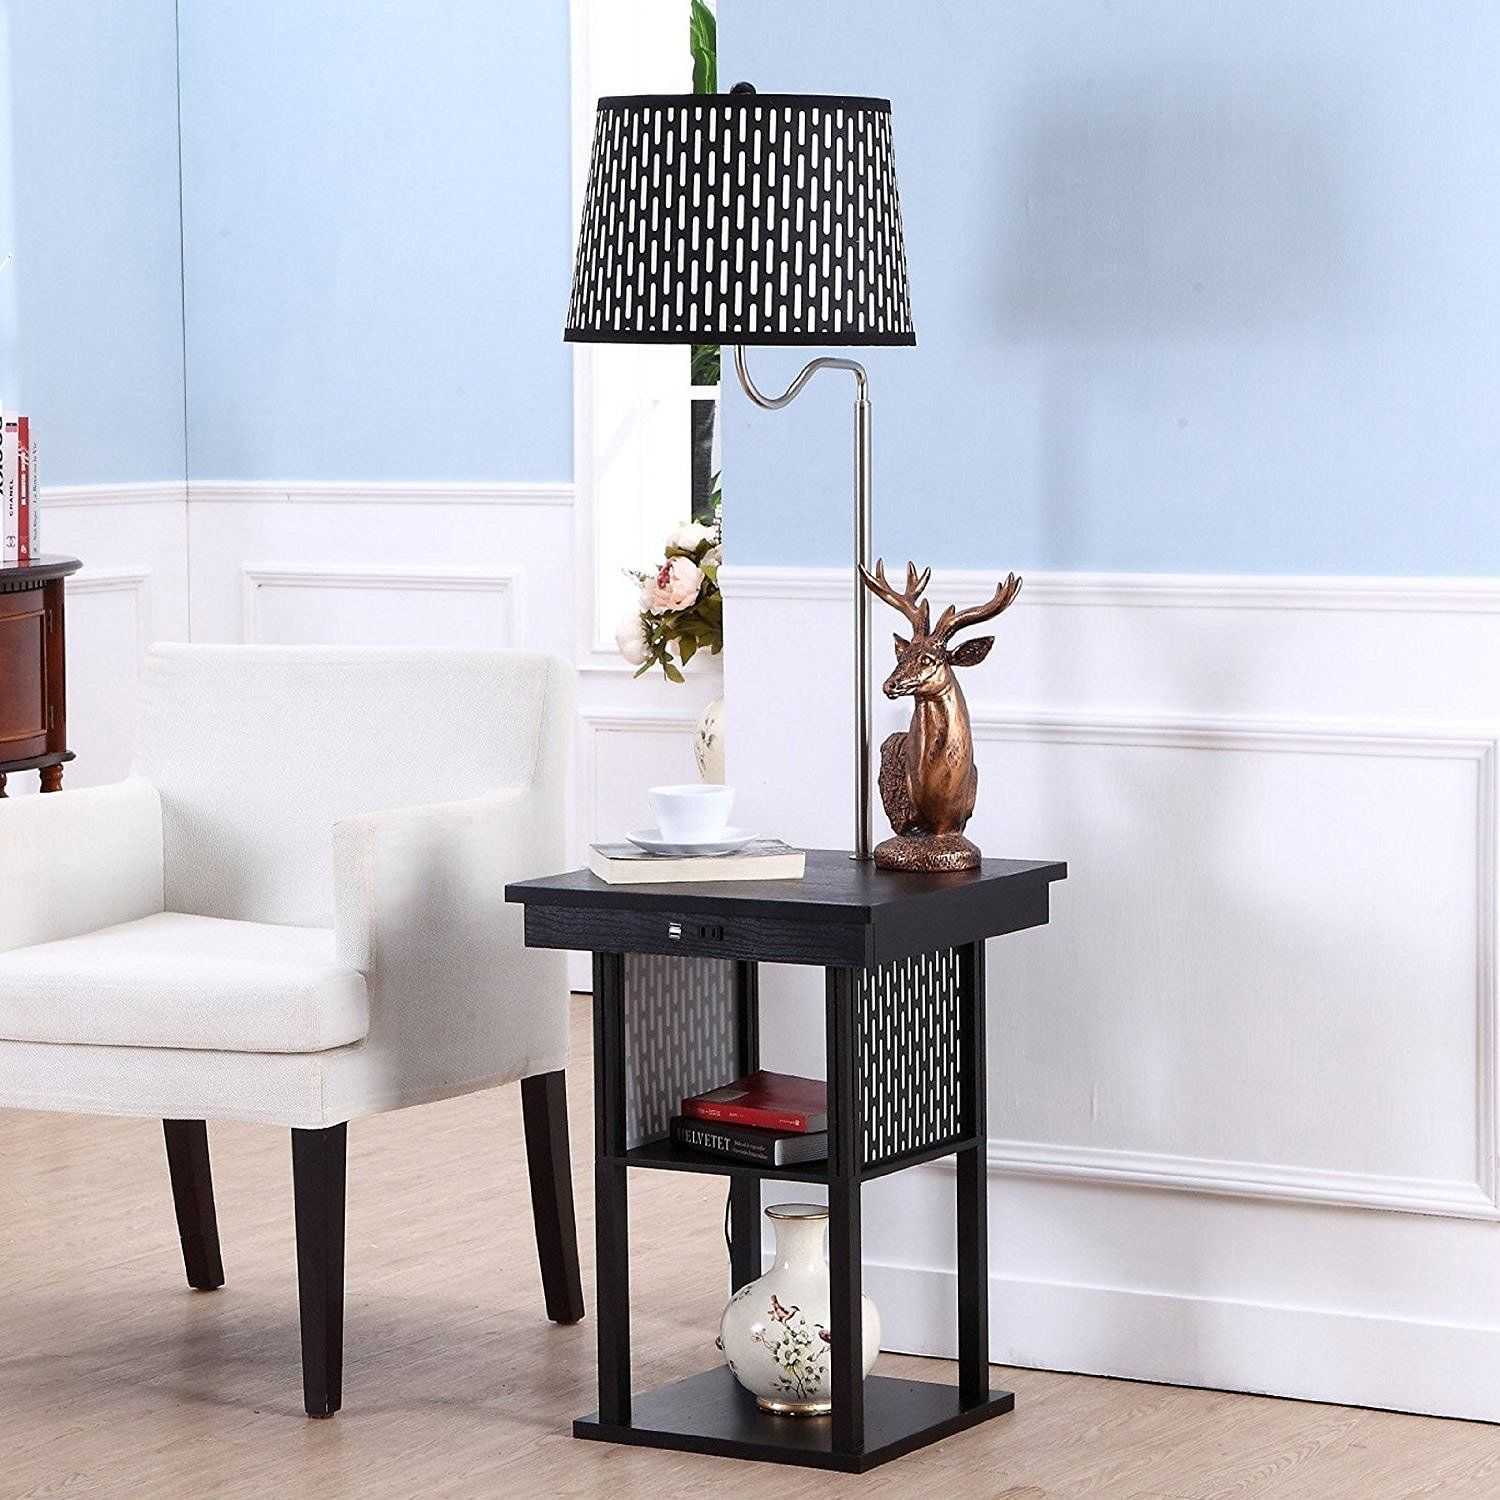 When You Need Value, Convenience And Creative Decor Added To A Room, Youu0027ll  Love These Popular End Tables With Lamps Built In, Choose From Several  Designs